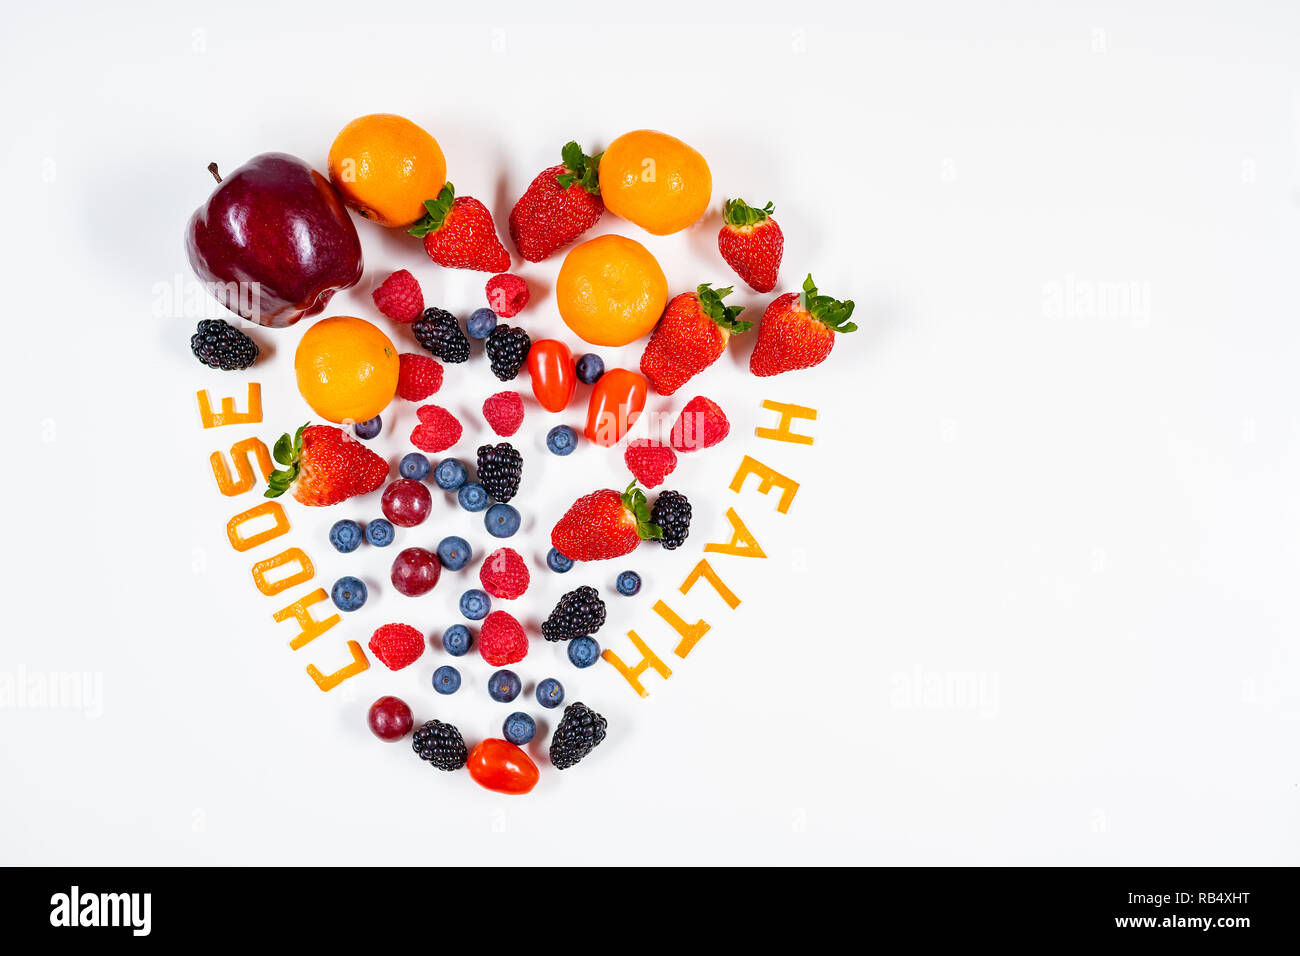 Heart shaped fruit arrangement with Choose Health message in it made out of tangerine peels in a clean white background with copy space. - Stock Image